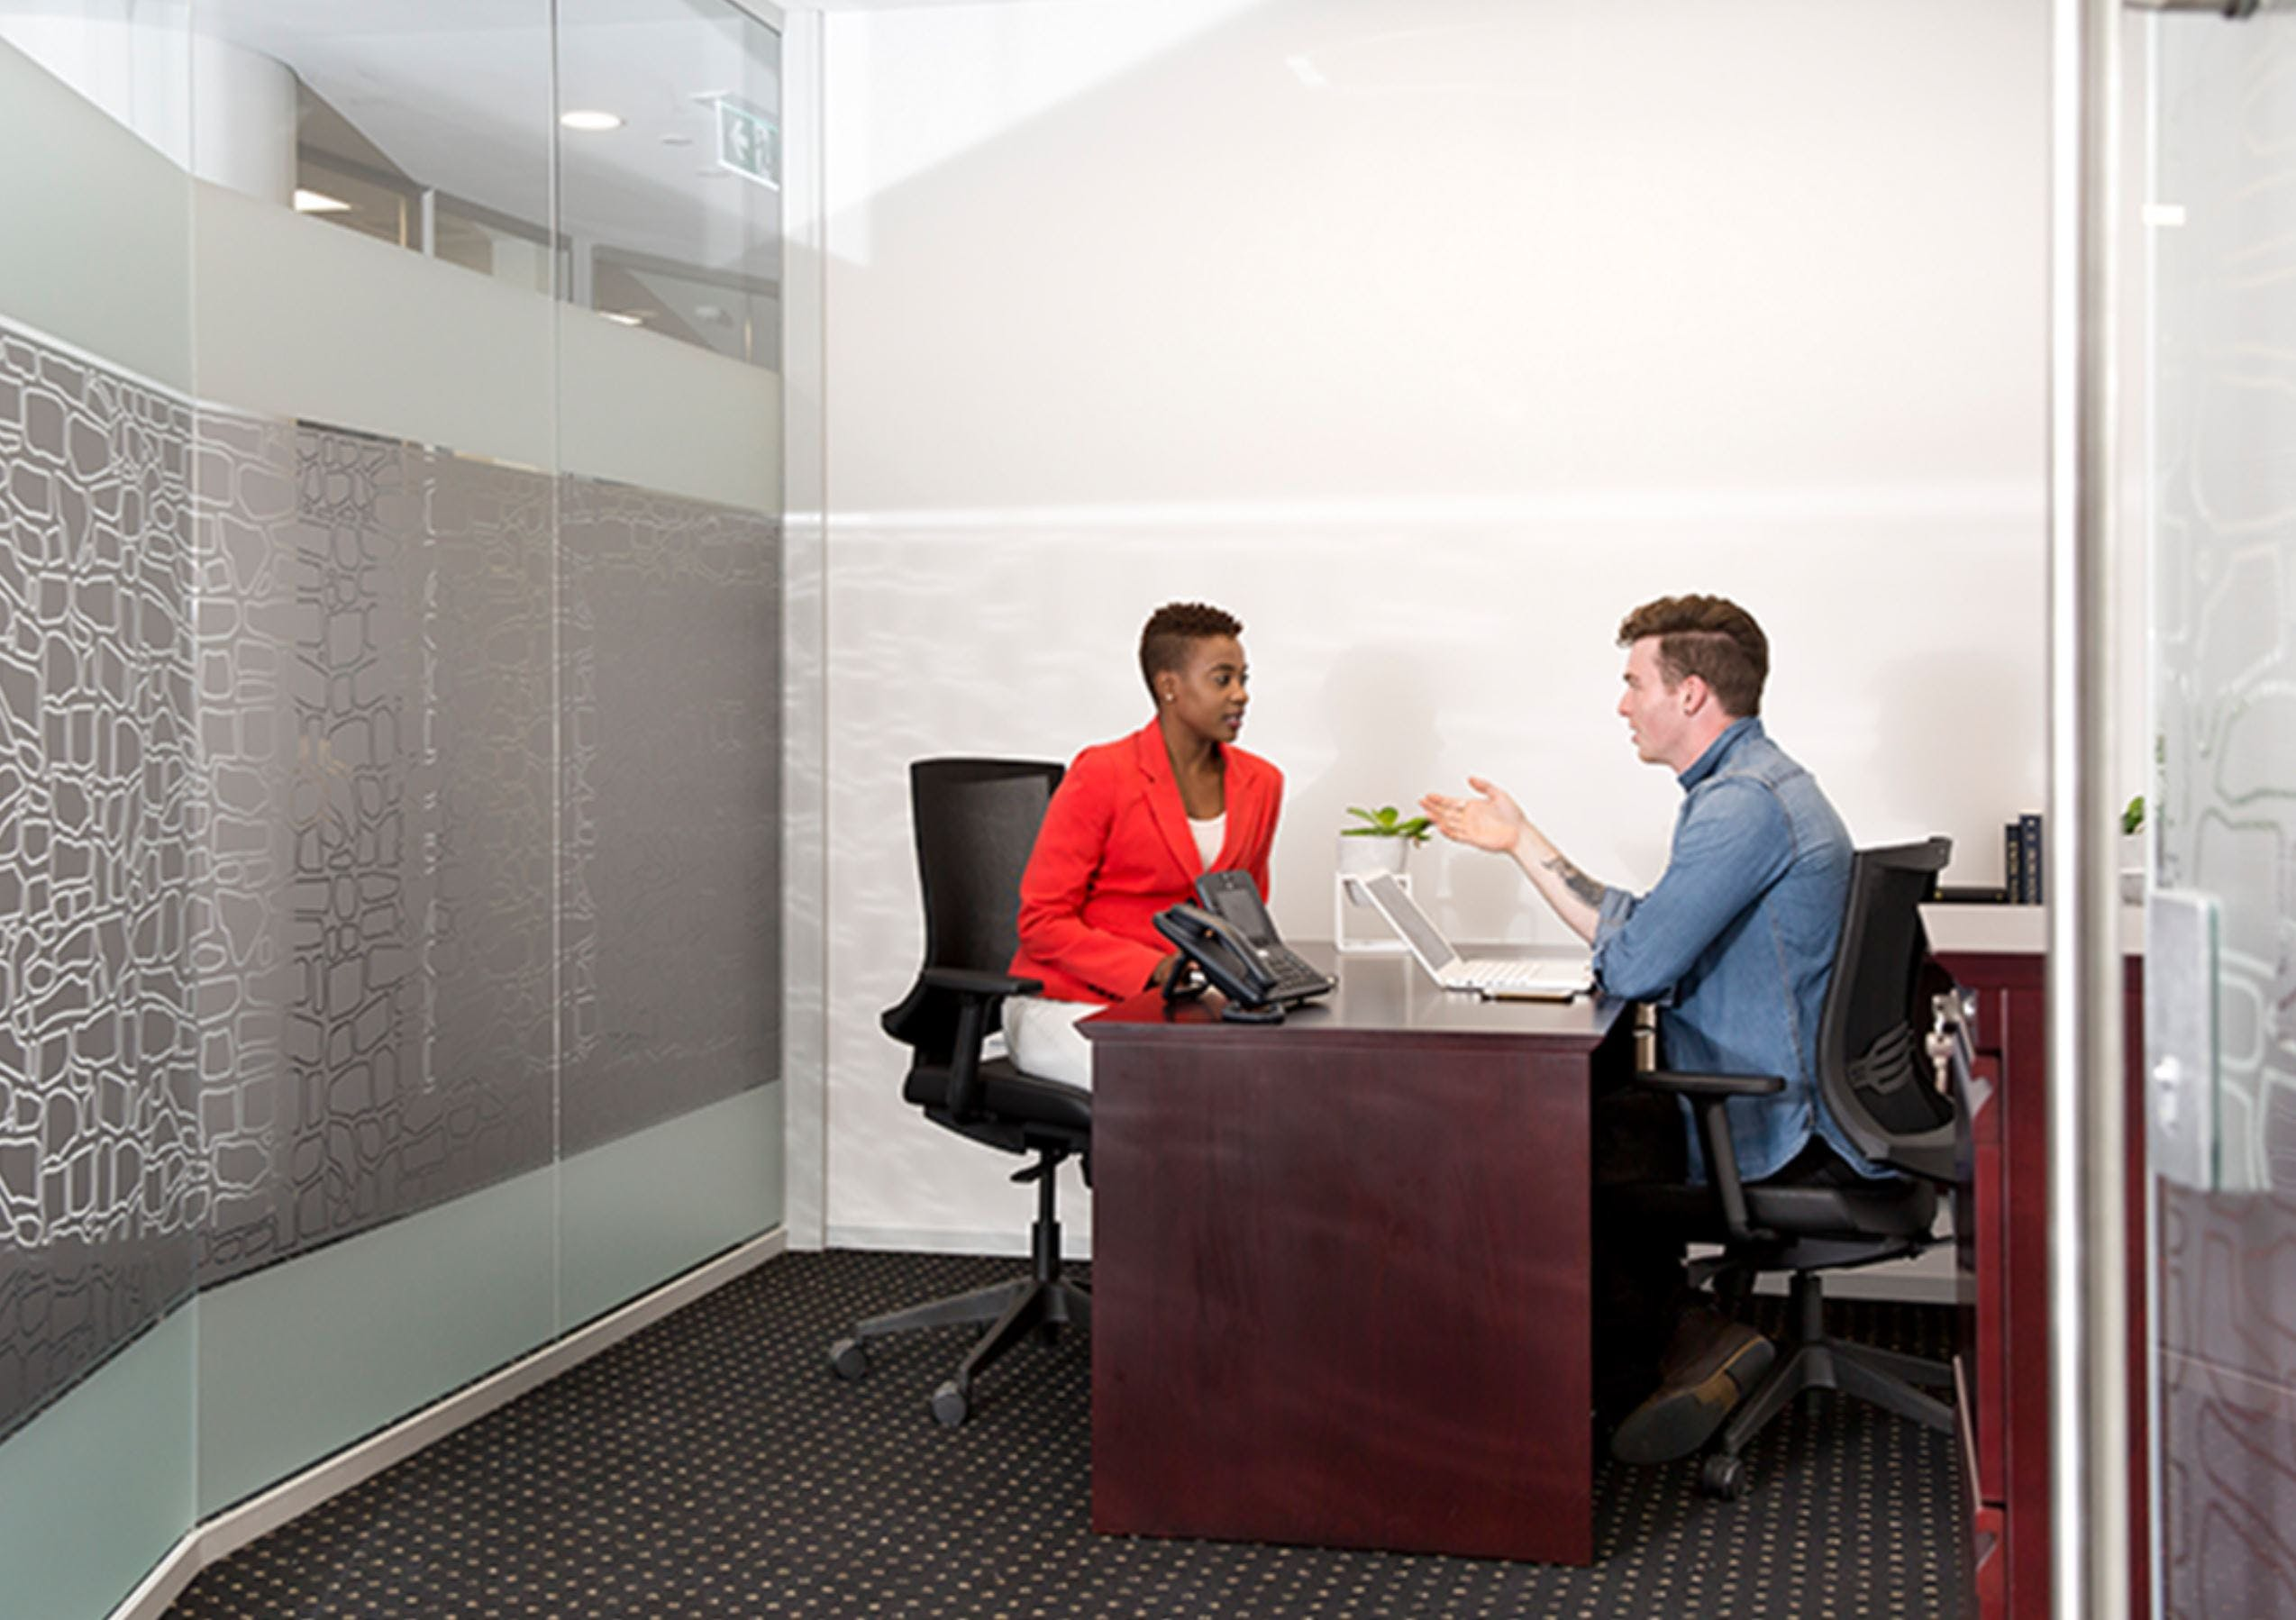 Day Suite 3, private office at Deloitte Building, image 1